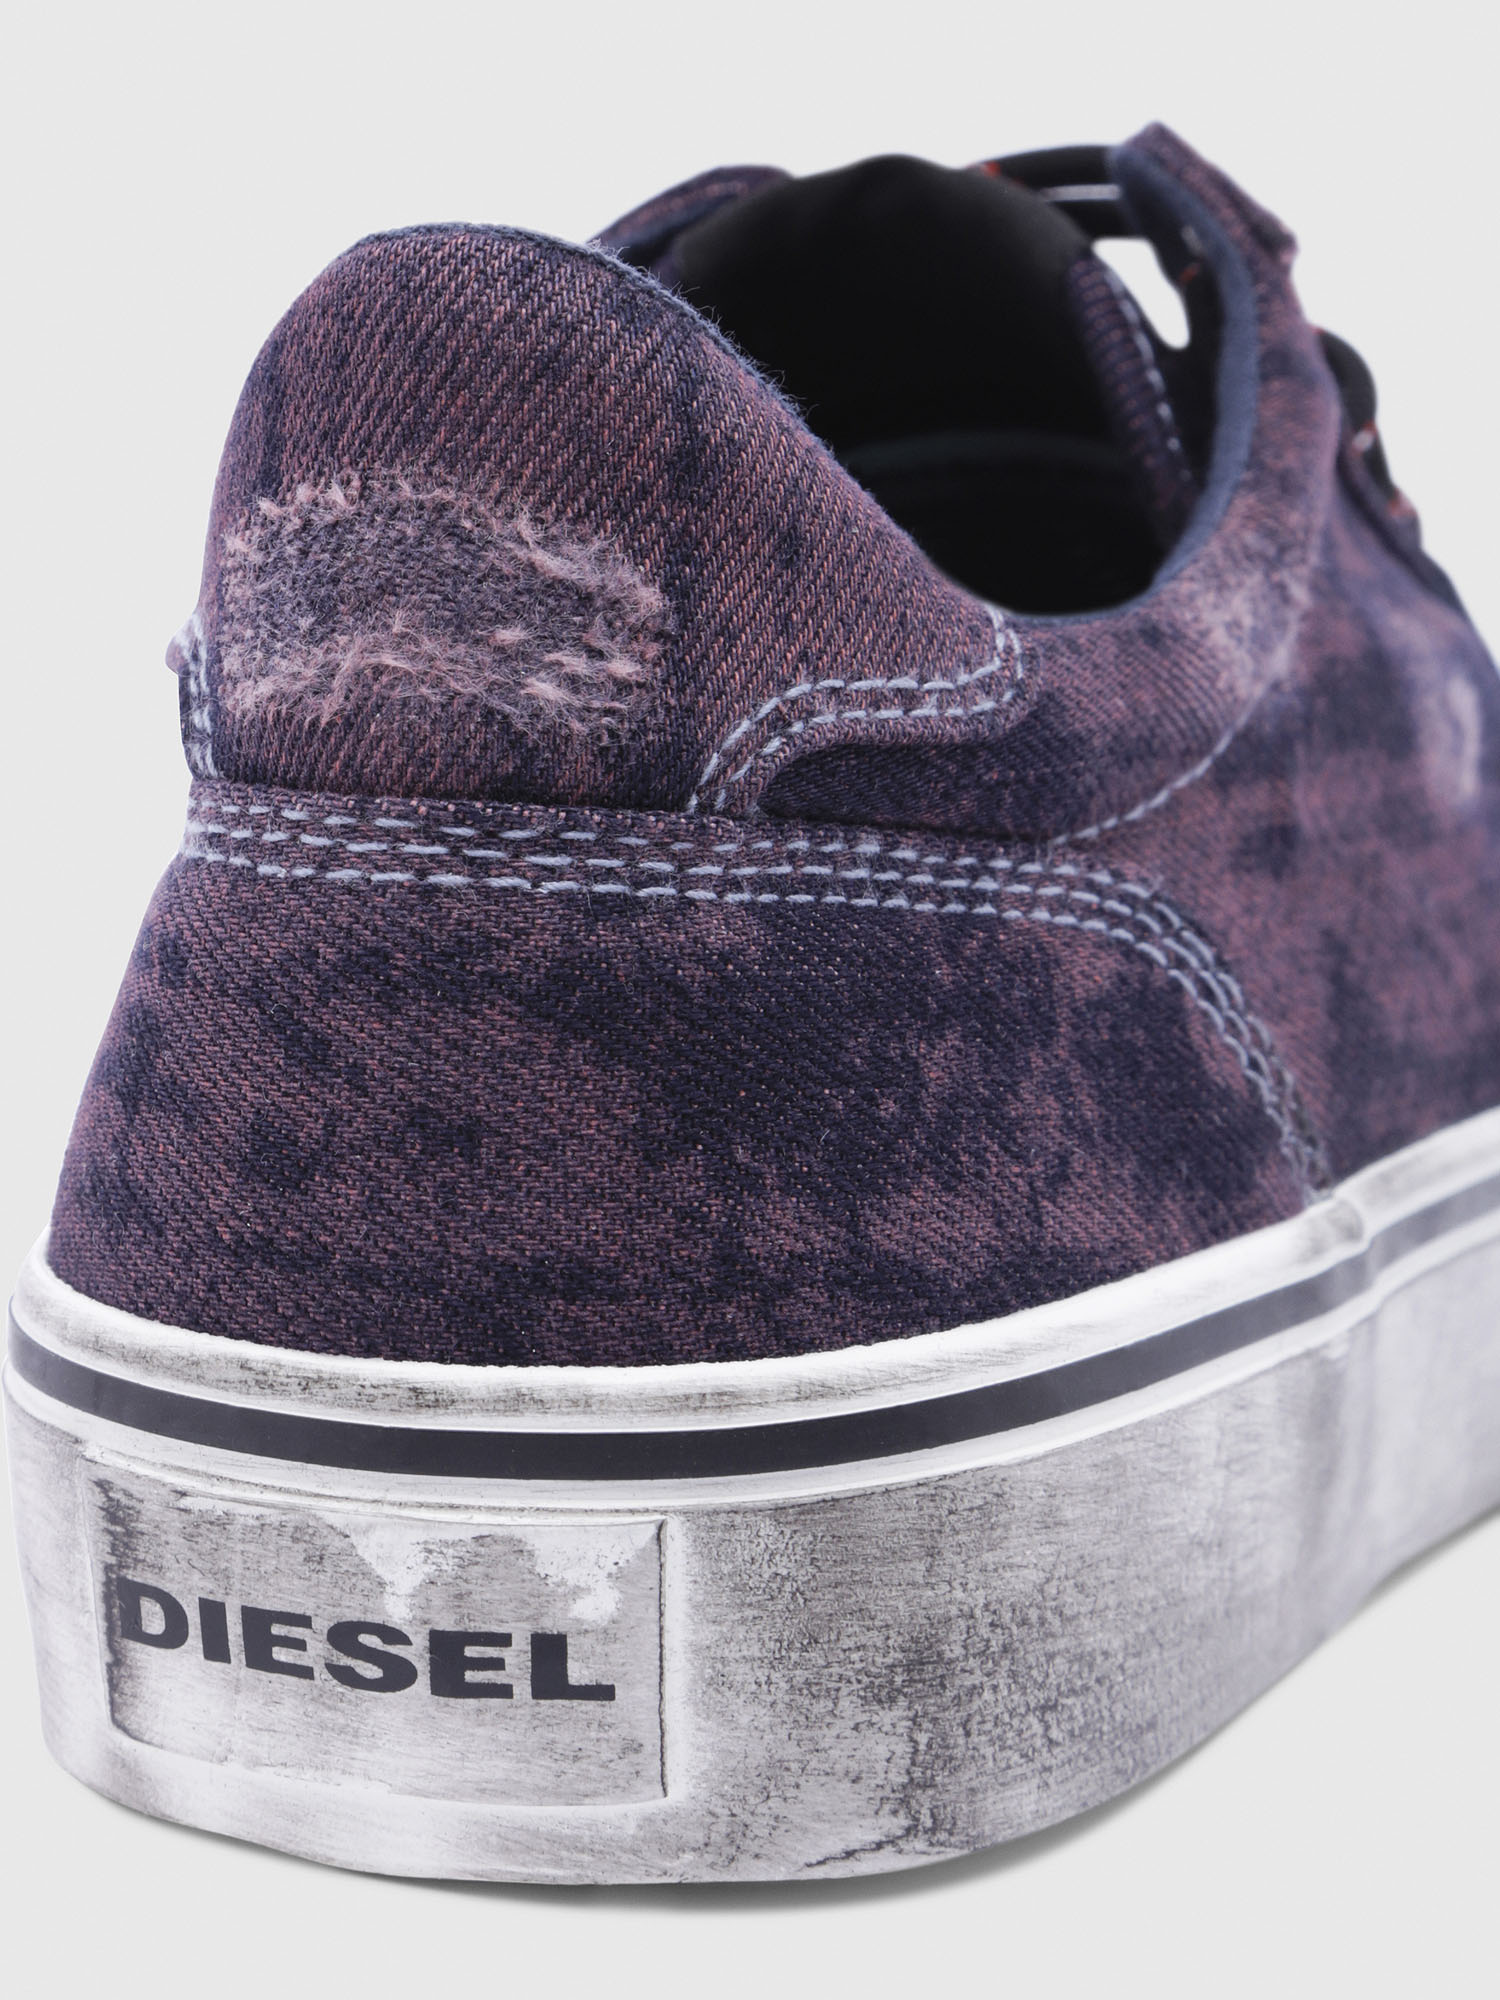 Diesel - S-FLIP LOW,  - Sneakers - Image 5